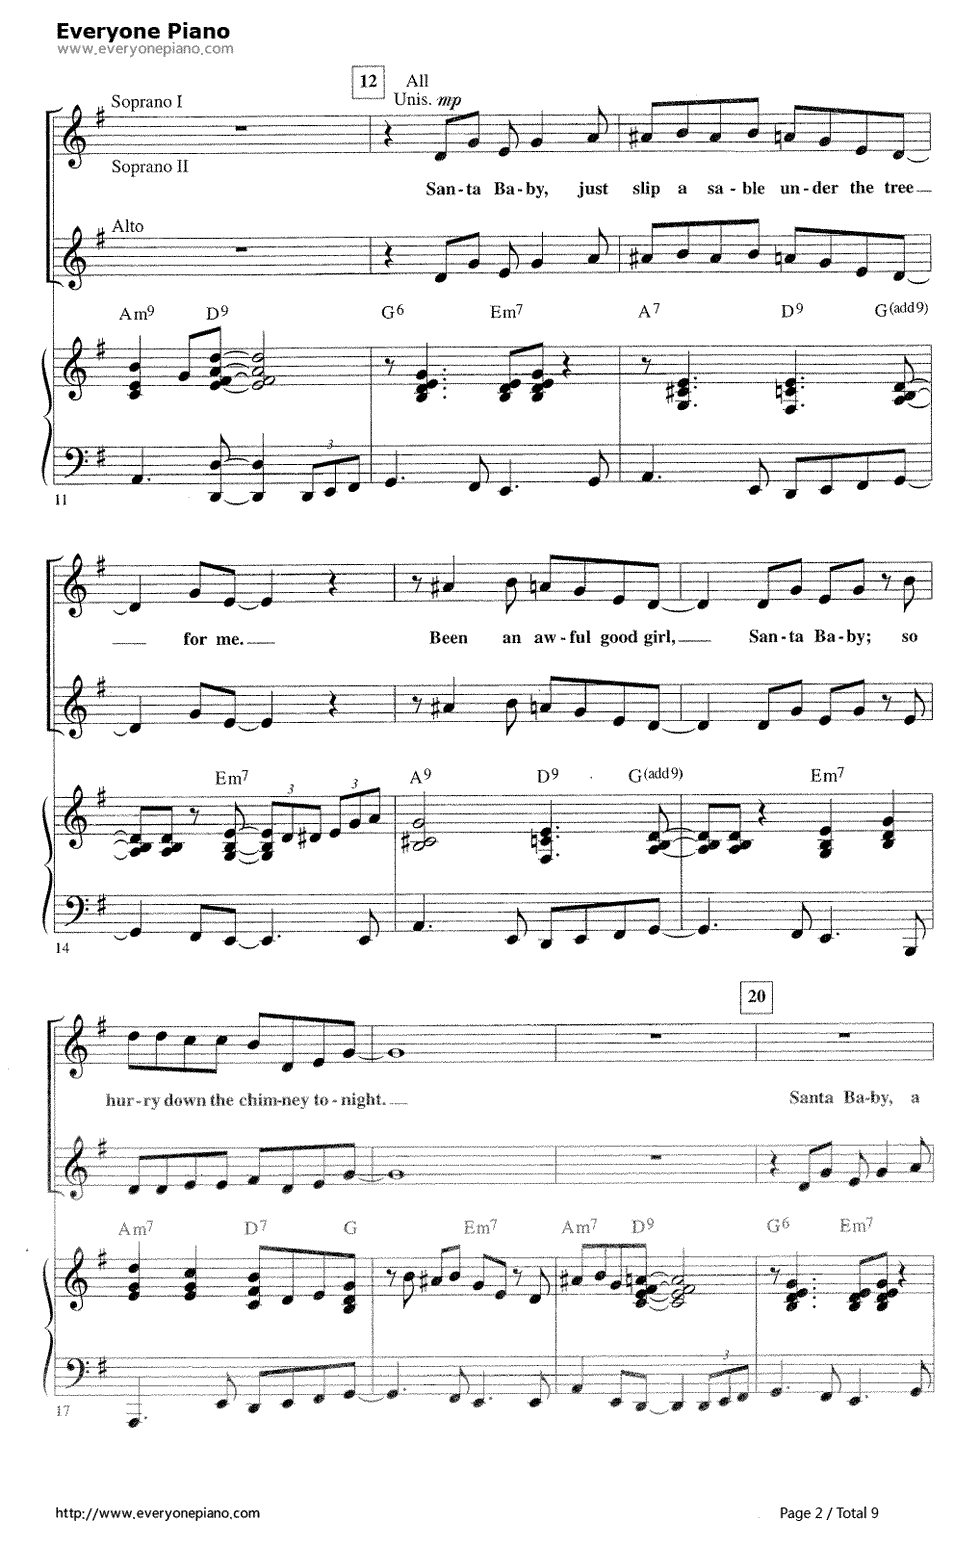 Santa baby eartha kitt stave preview 2 free piano sheet music santa baby eartha kitt stave preview 2 free piano sheet music piano chords hexwebz Images